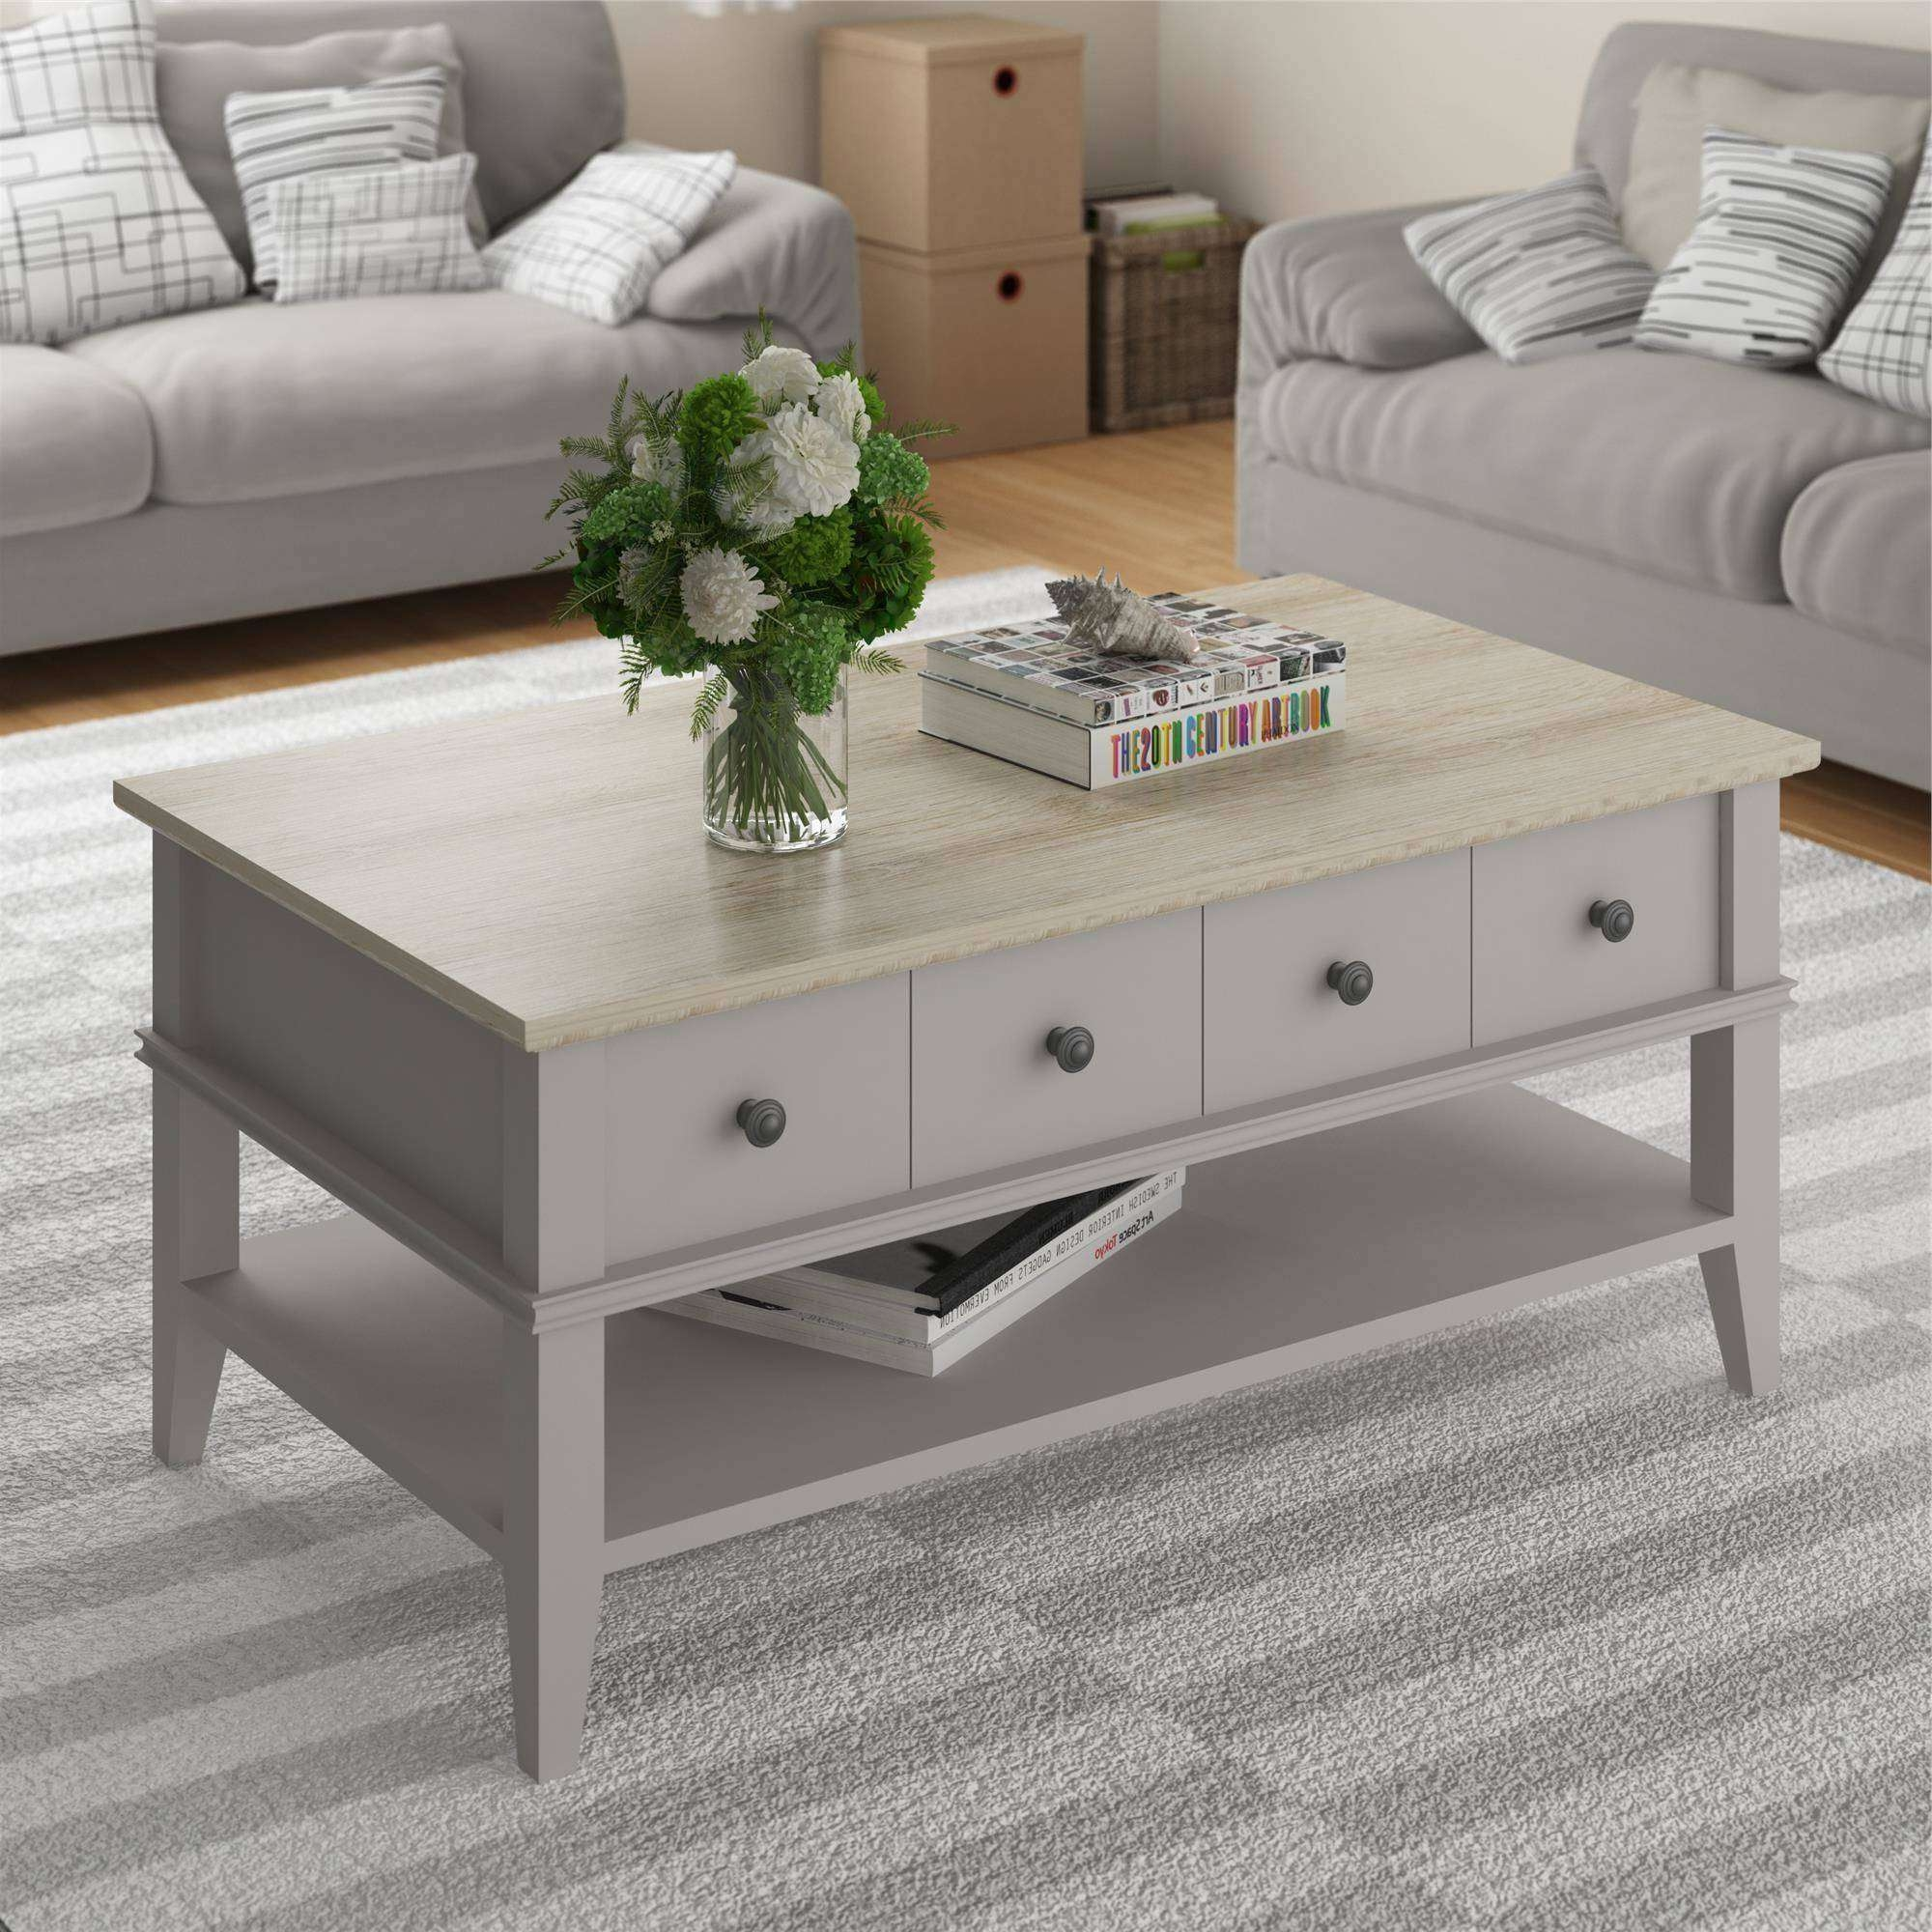 2017 Grey Coffee Tables Pertaining To Ameriwood Home Newport Coffee Table, Light Gray/light Brown (View 2 of 20)